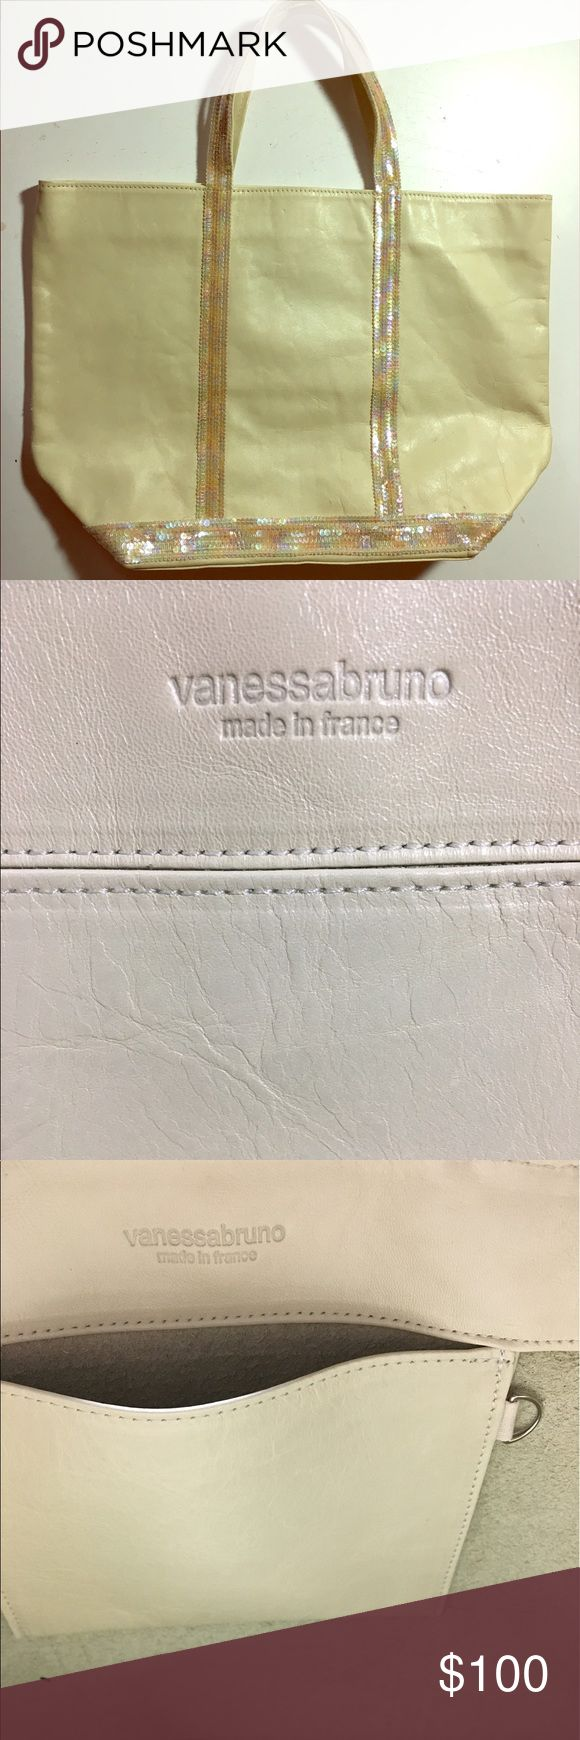 """Vanessa Bruno leather and sequin tote! Great condition , Vanessa Bruno classic tote. Cream leather with iridescent sequin handles and base.  12""""height, 10 1/2 width, 6"""" depth. Slight marks on side (see photo) Vanessa Bruno Bags"""